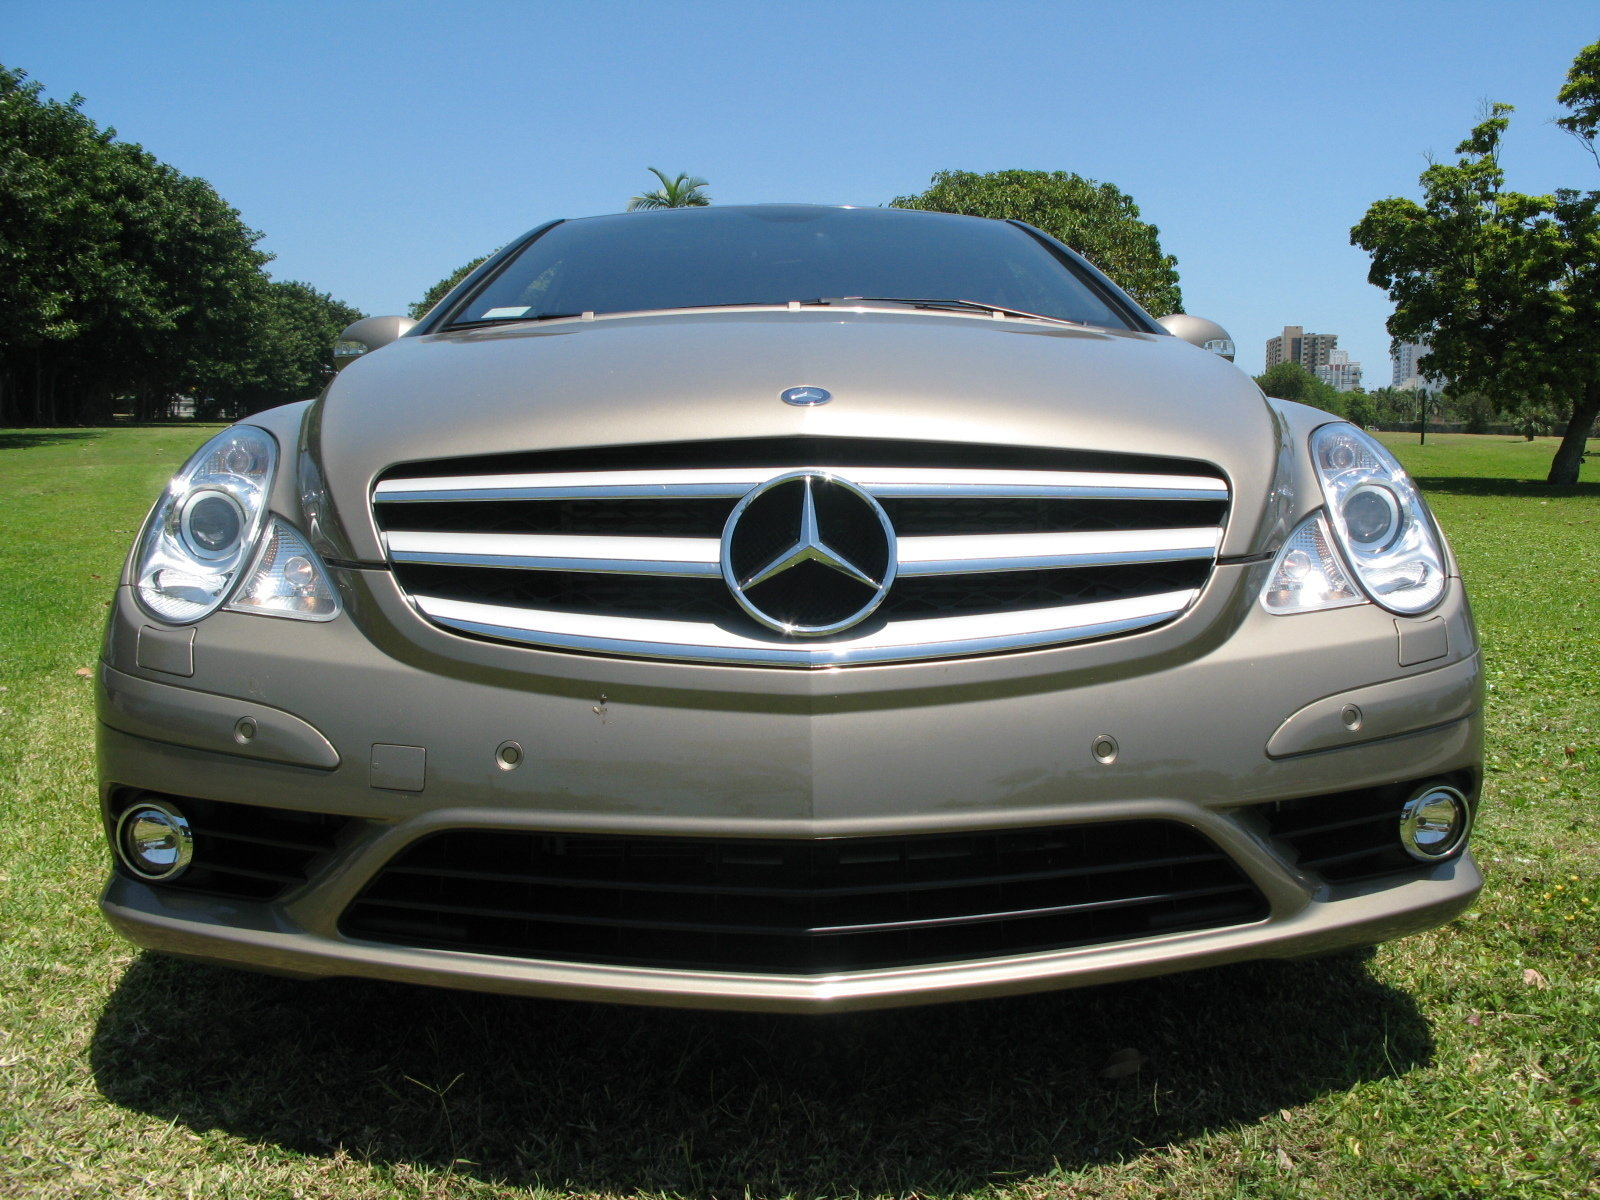 2008 mercedes r320 cdi 4 matic picture 248587 car review top speed. Black Bedroom Furniture Sets. Home Design Ideas